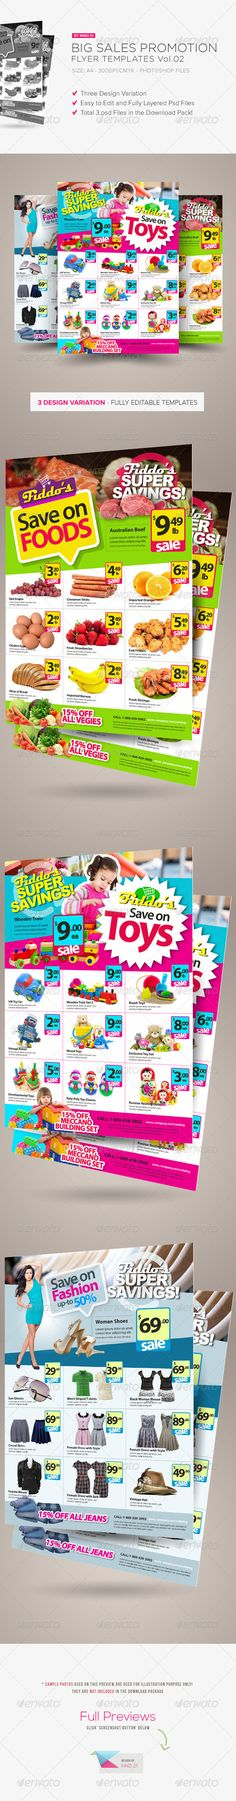 Supermarket Products Flyer Templates Pinterest Flyer template